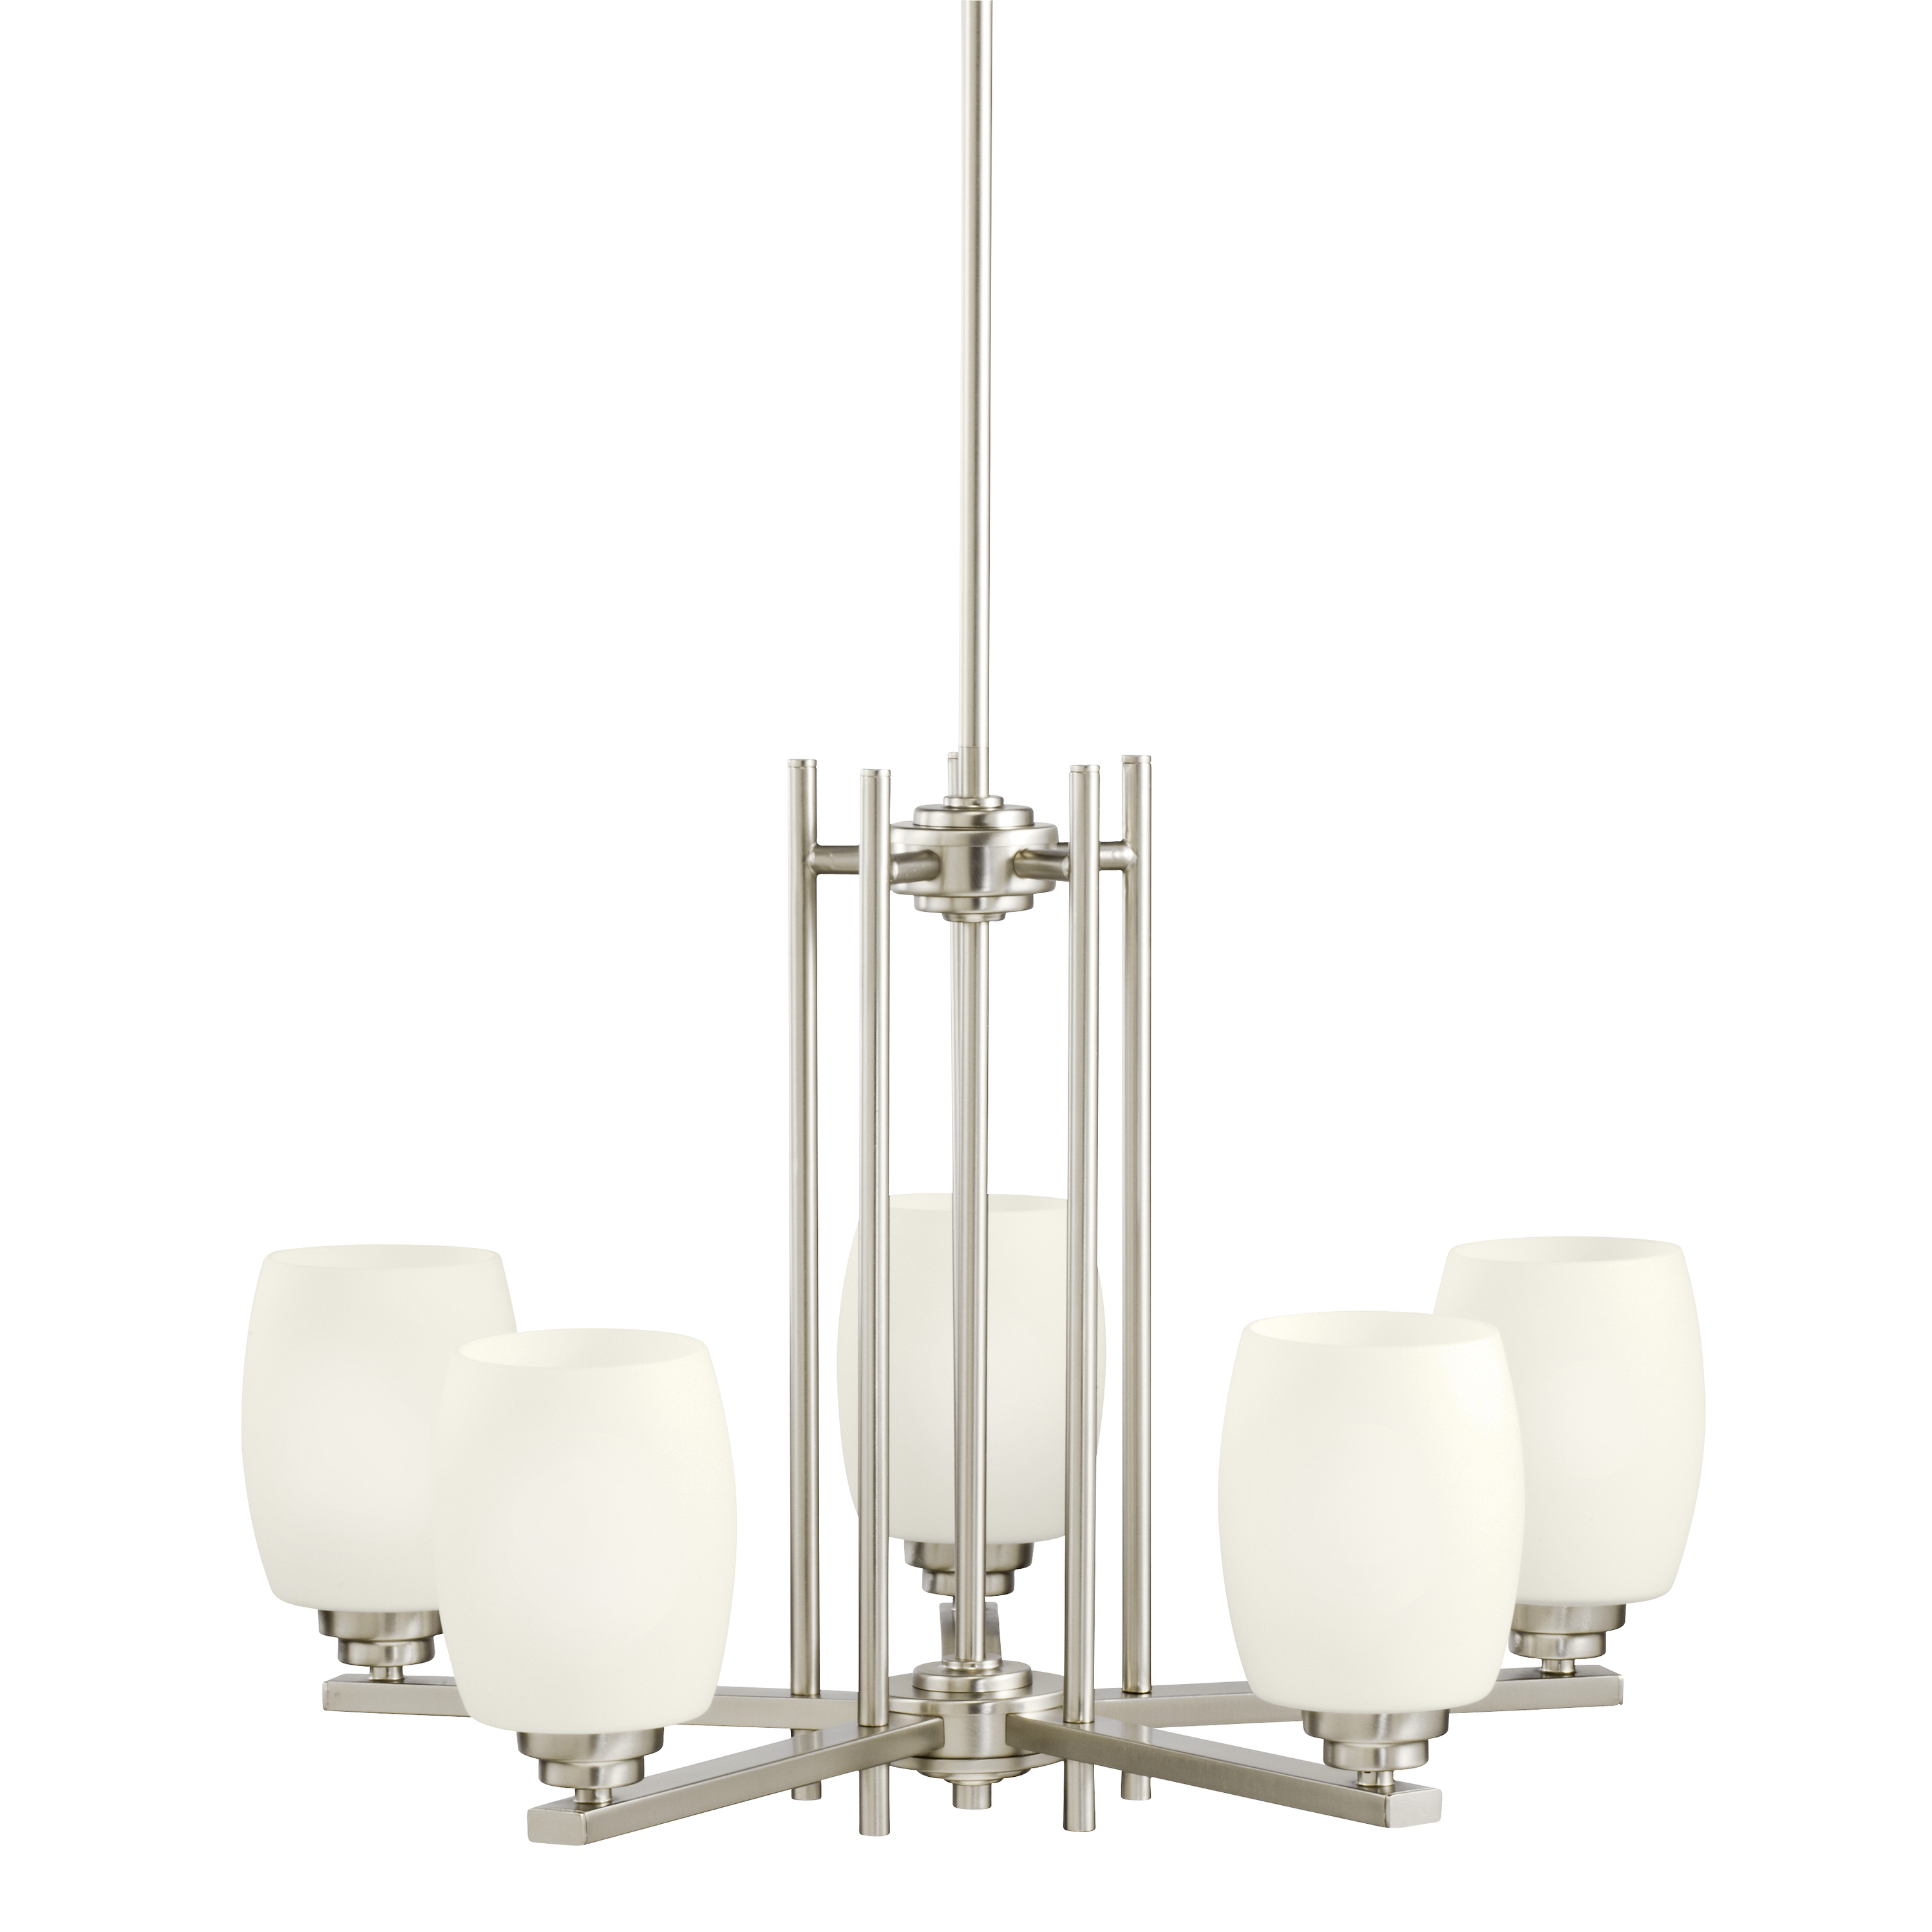 Kichler Eileen LED Chandelier with Satin Etched Cased Opal Shade - Brushed Nickel (1896NIL16)